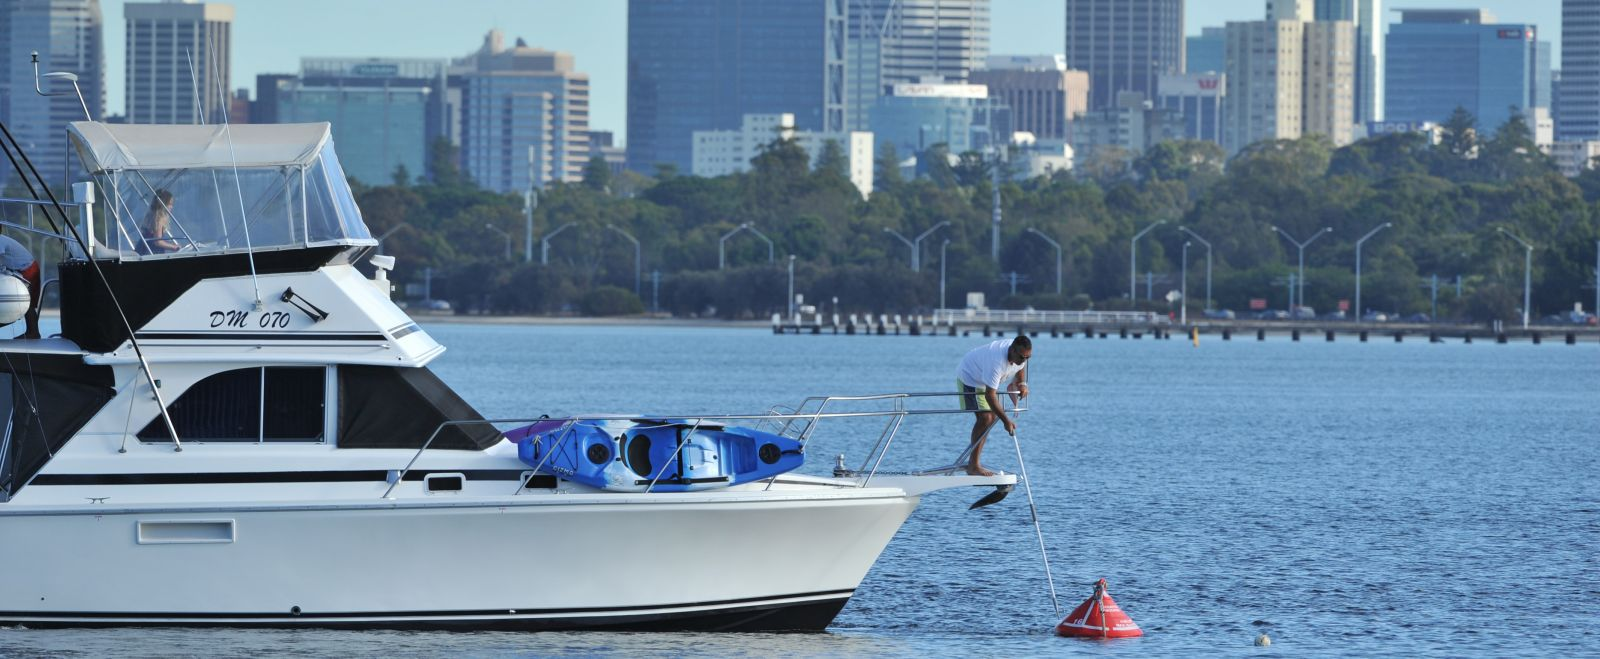 Have your say on future development and changes around Perth Waters.